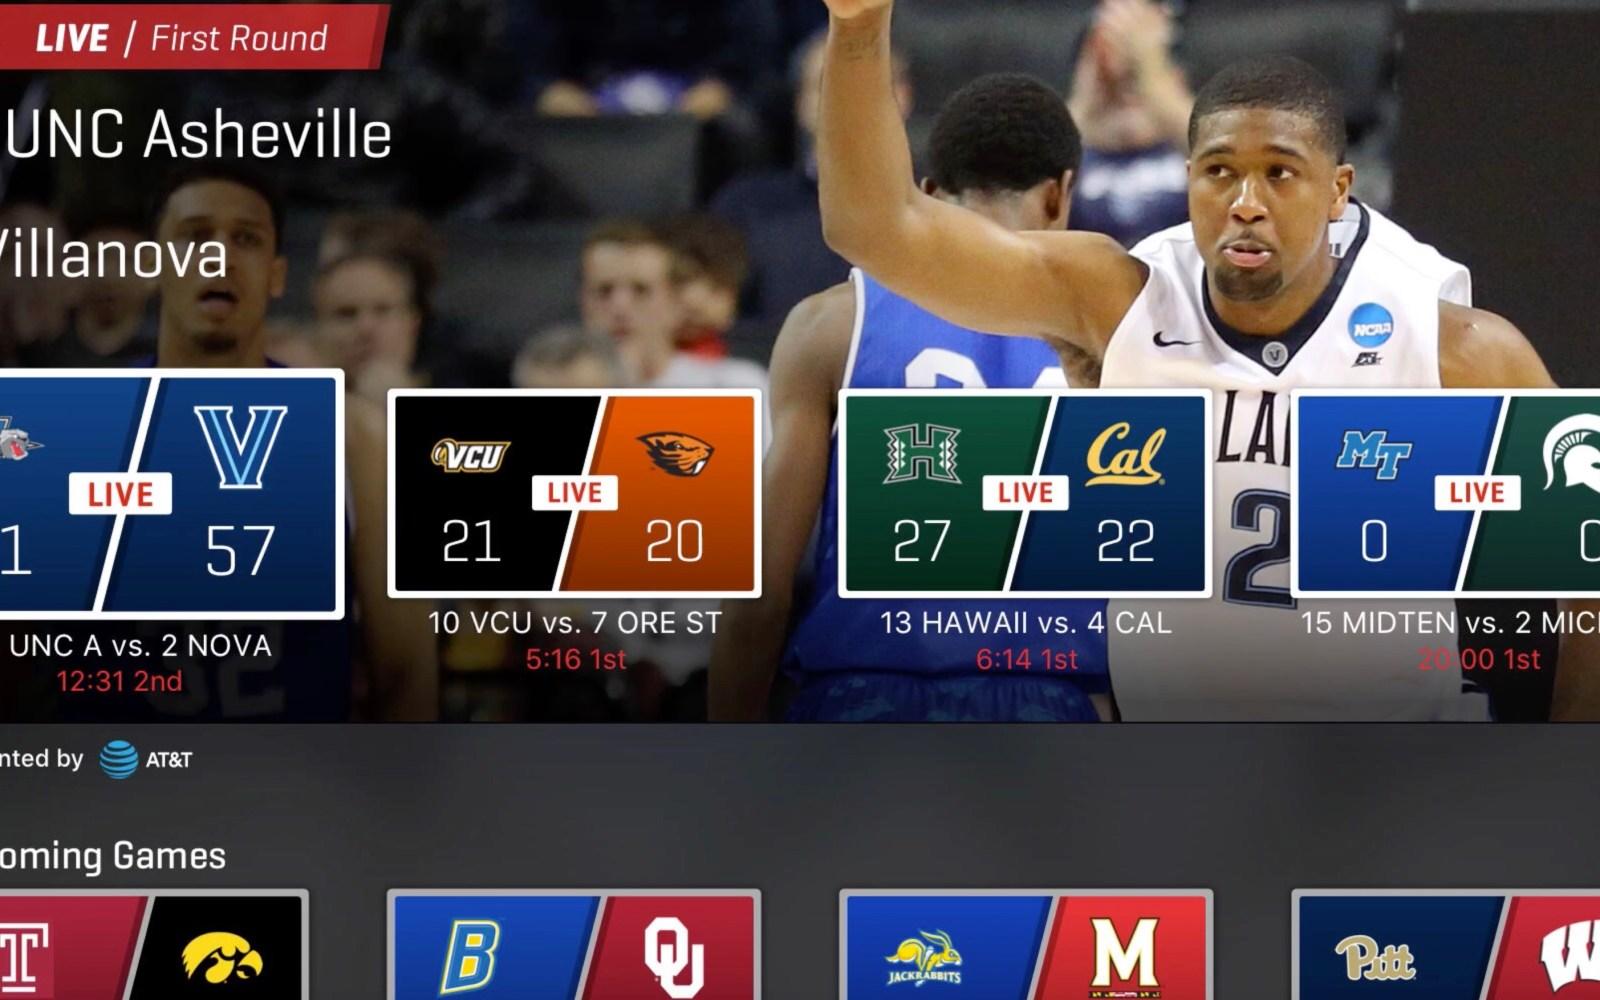 How to stream March Madness live on iPhone, iPad, Mac or Apple TV